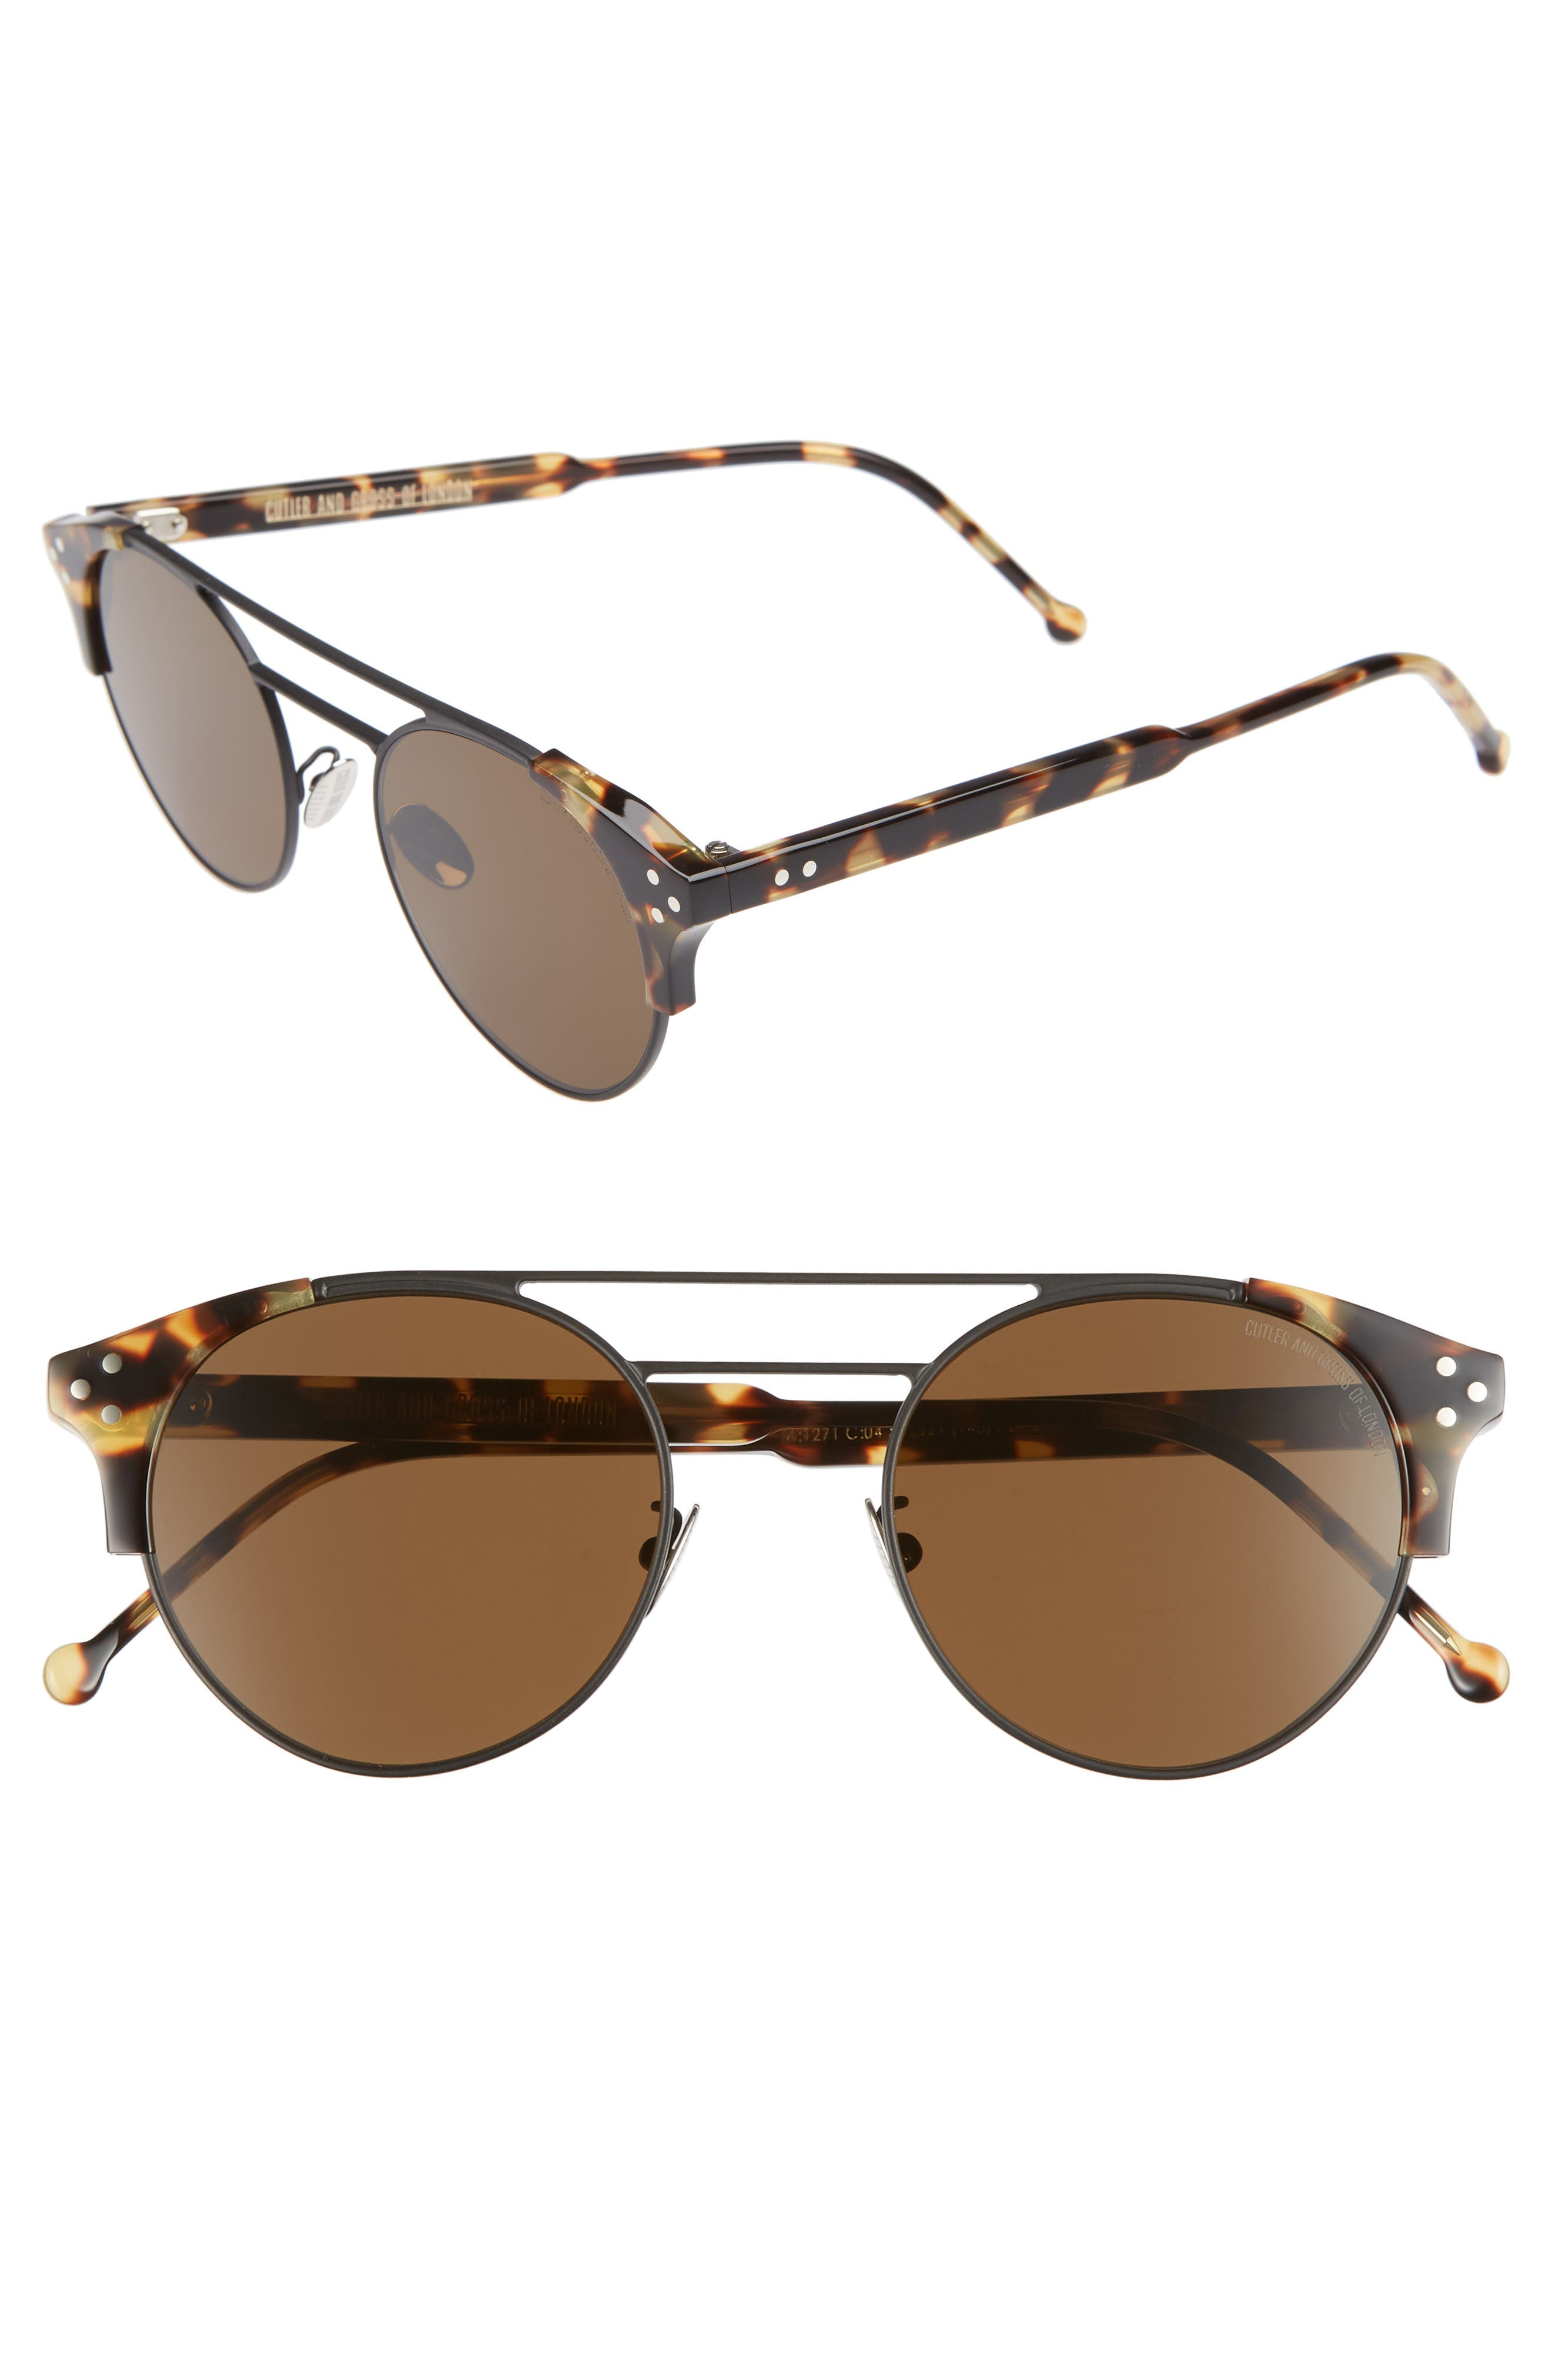 CUTLER AND GROSS 50mm Polarized Round Sunglasses, Main, color, BLACK AND CAMOUFLAGE/ BROWN